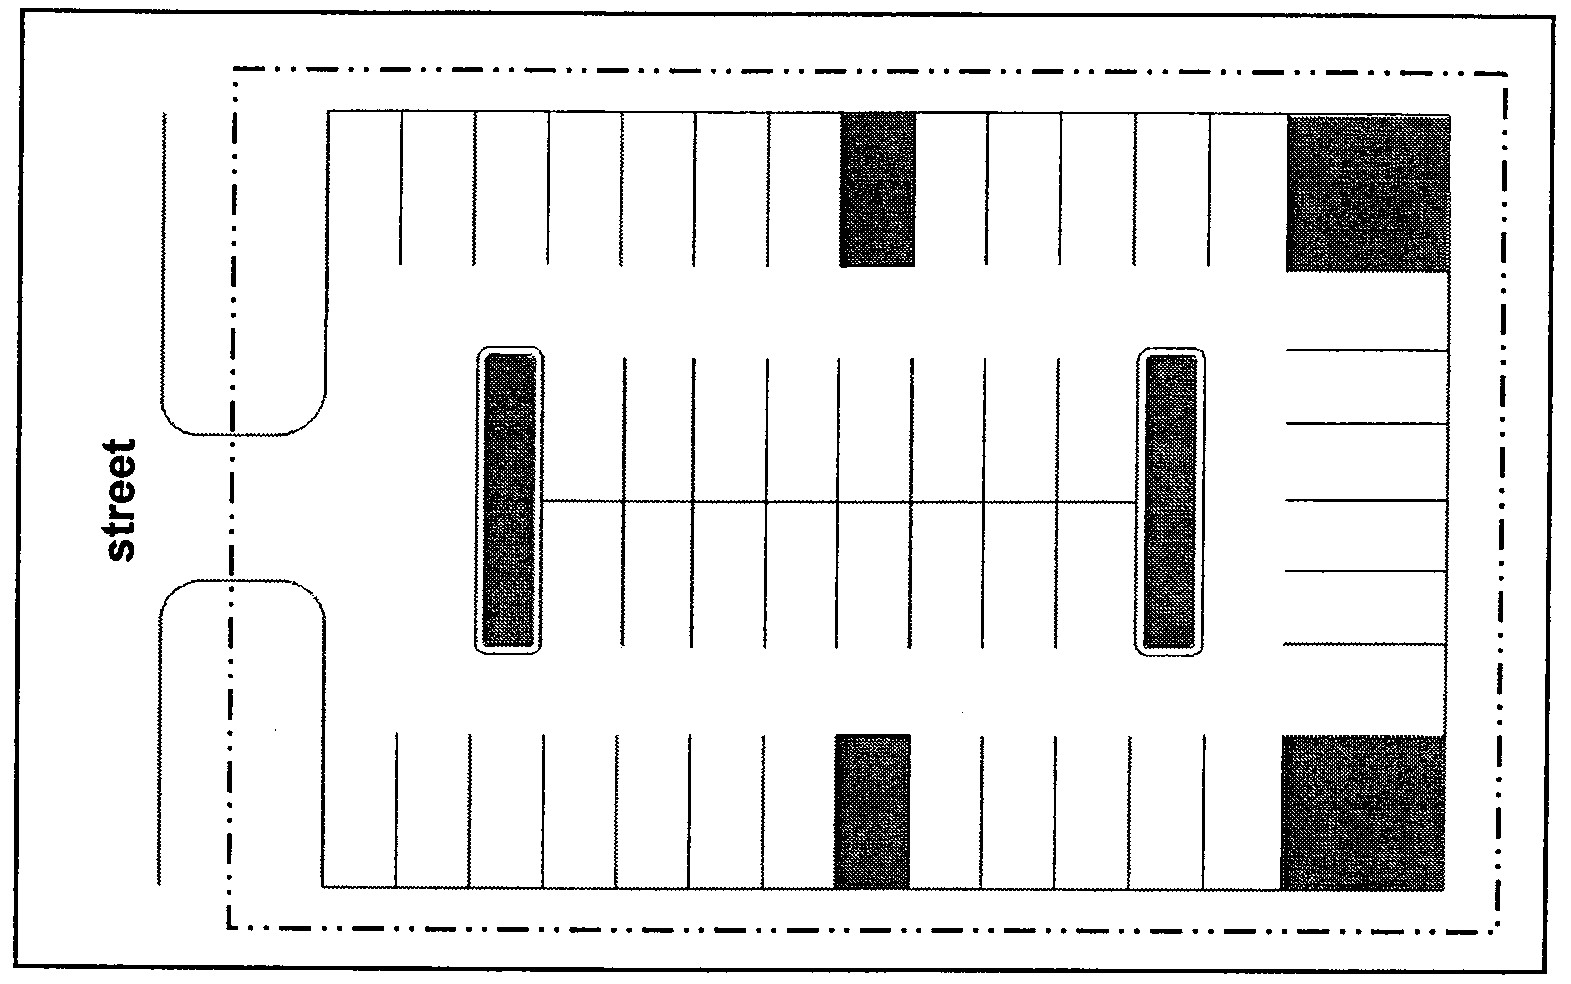 Parking Lot Layout Template Parking Lot Size For Cars Cars Image